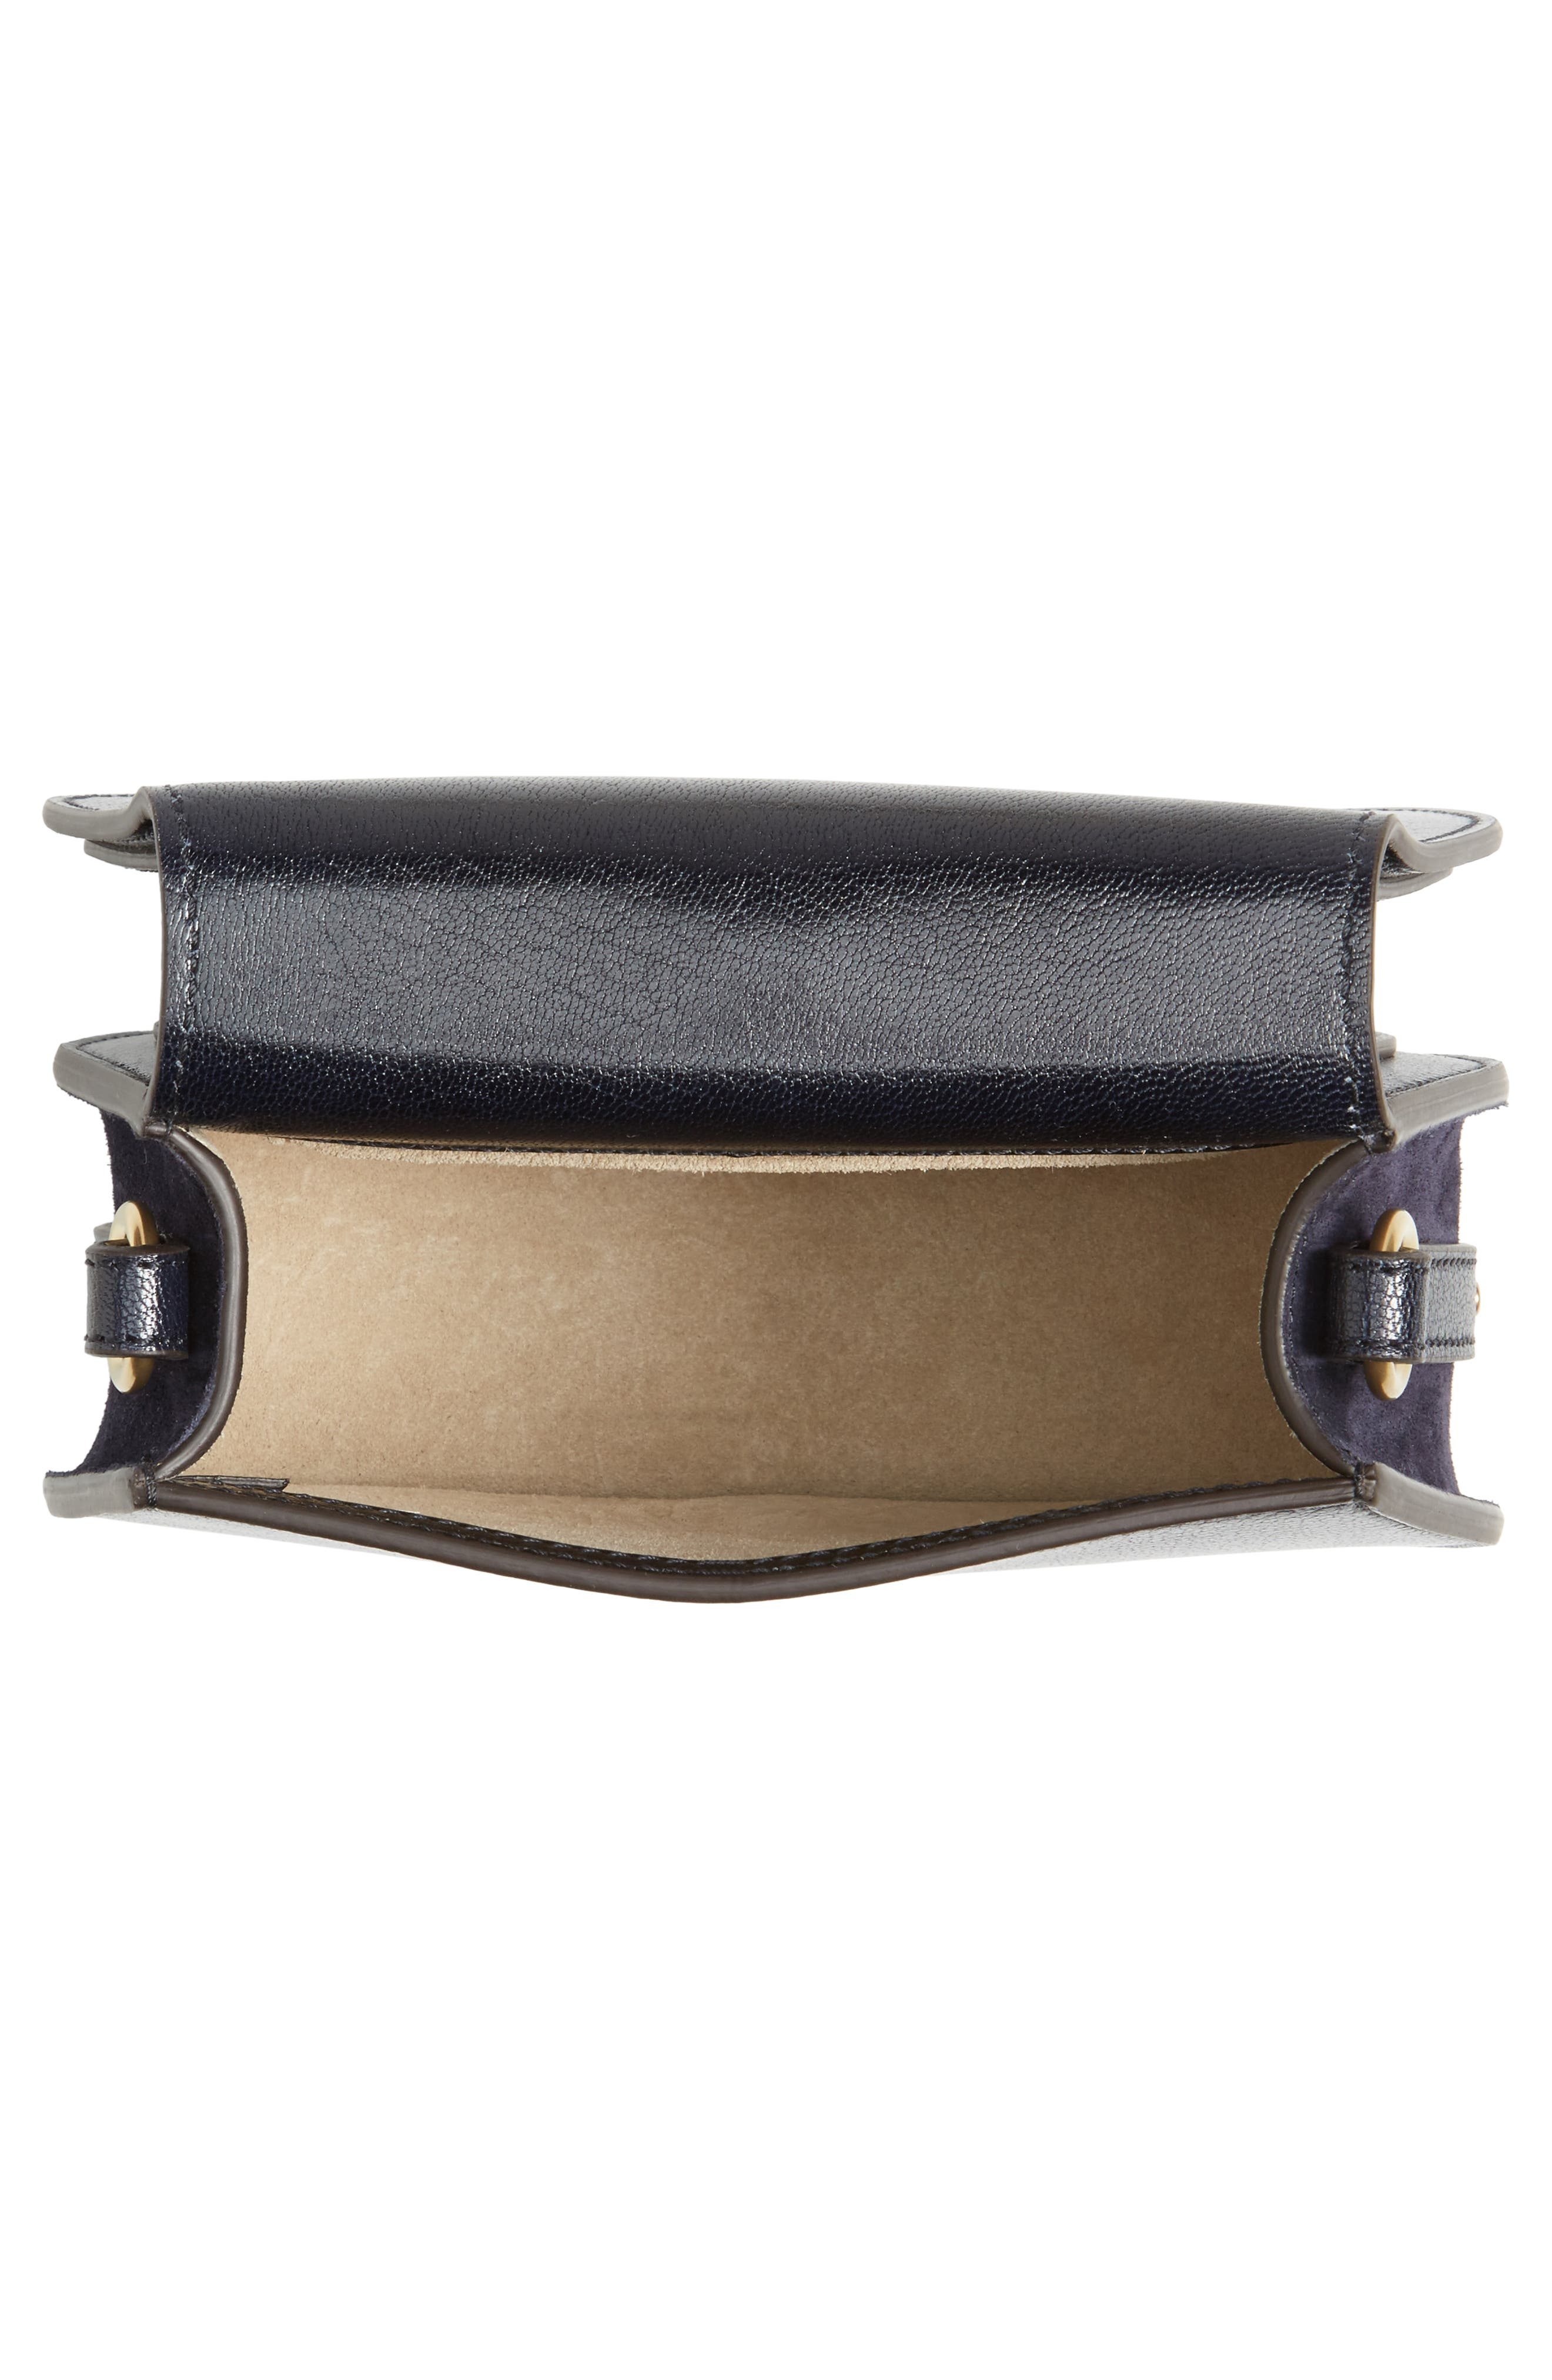 Alternate Image 3  - Chloé Small Nile Leather Crossbody Bag